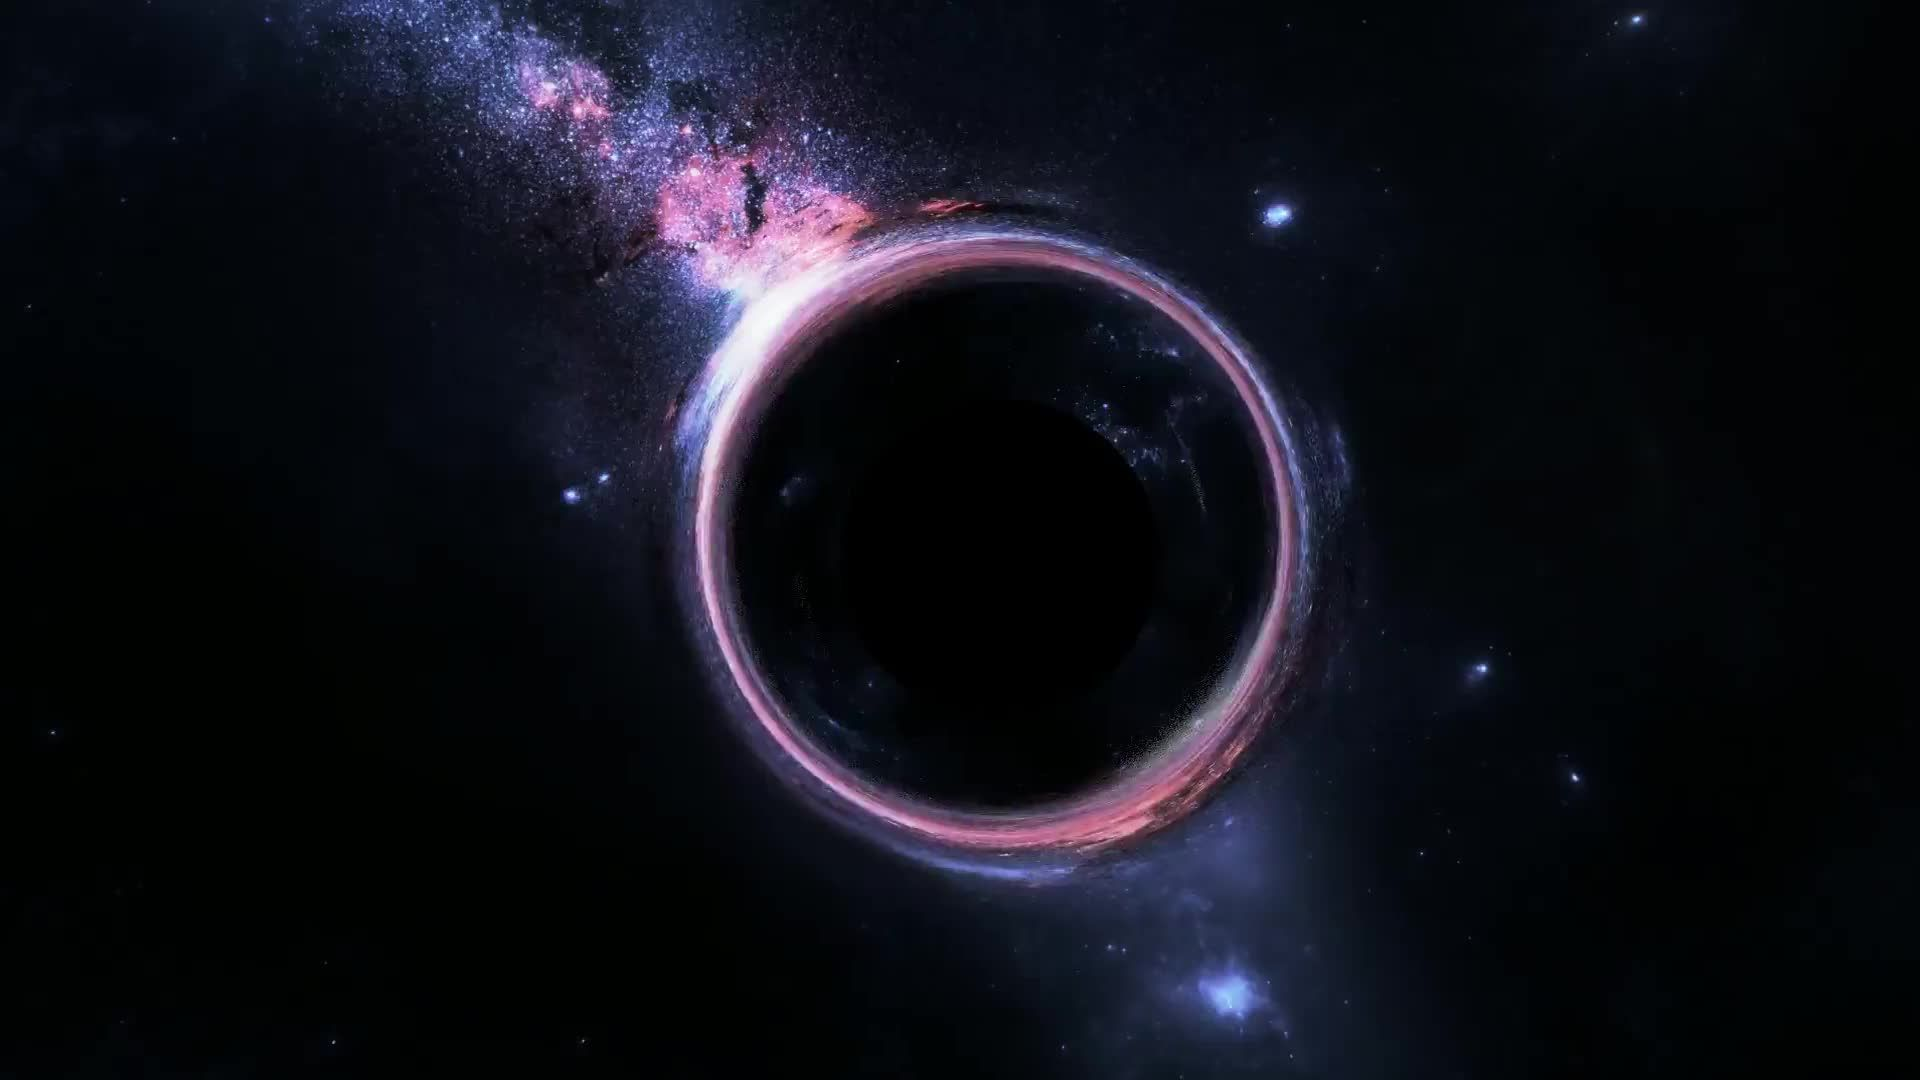 Black Holes Wallpapers Top Free Black Holes Backgrounds